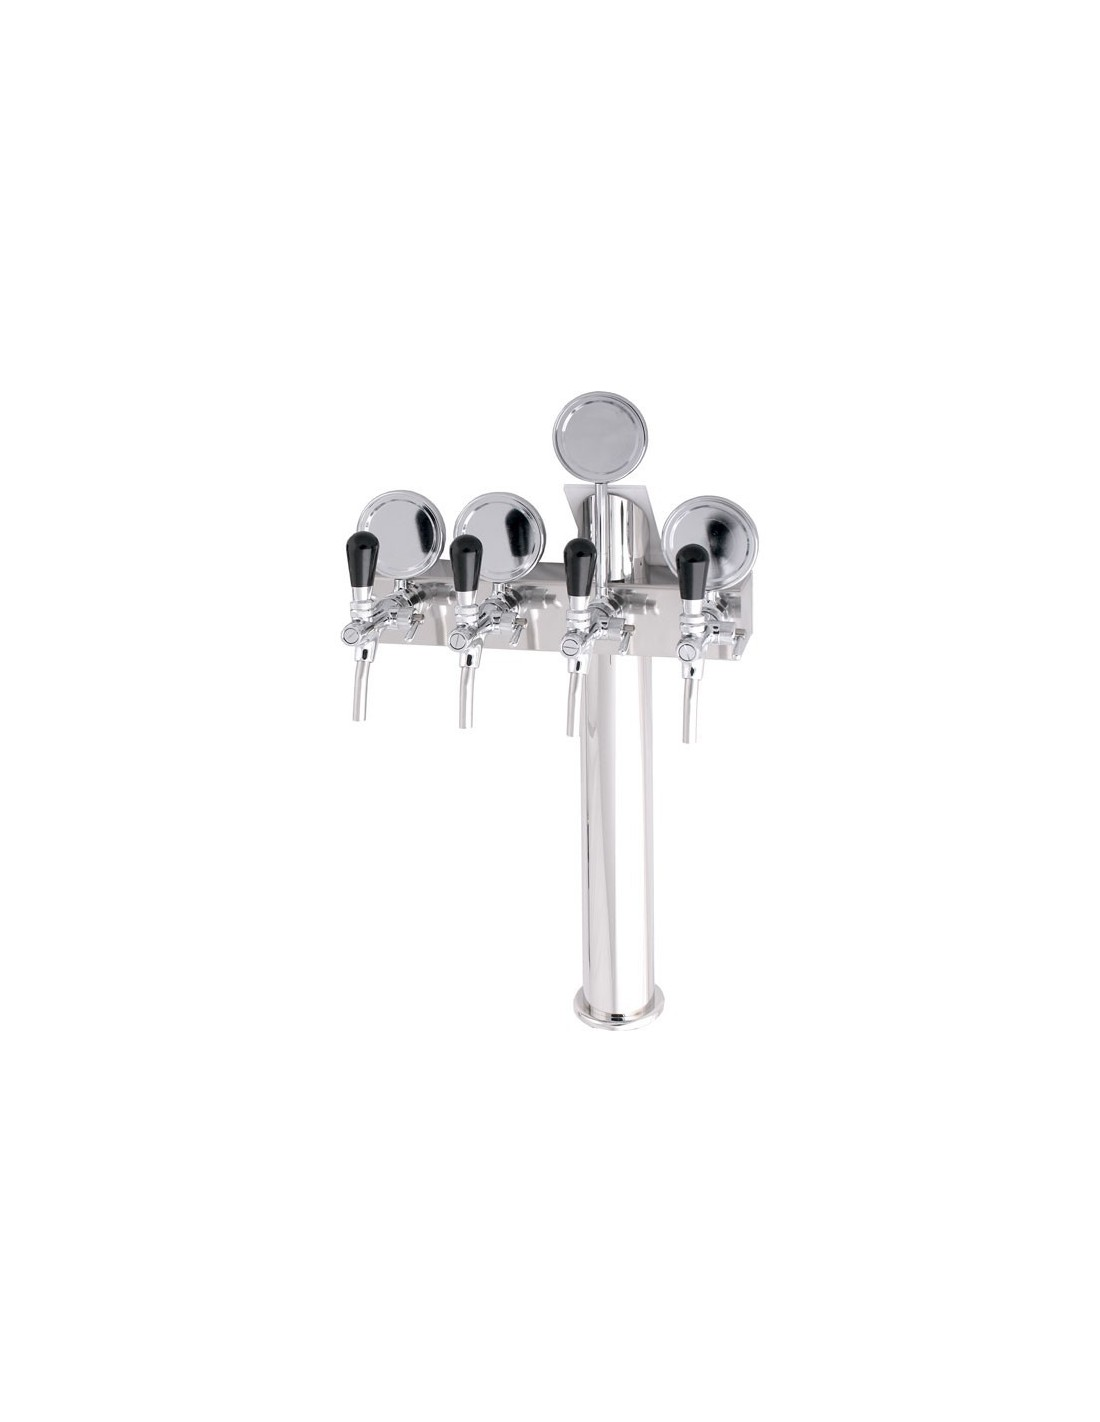 """STV00883 - Beer font """"T4"""" in stainless steel with 4 taps + medallions"""